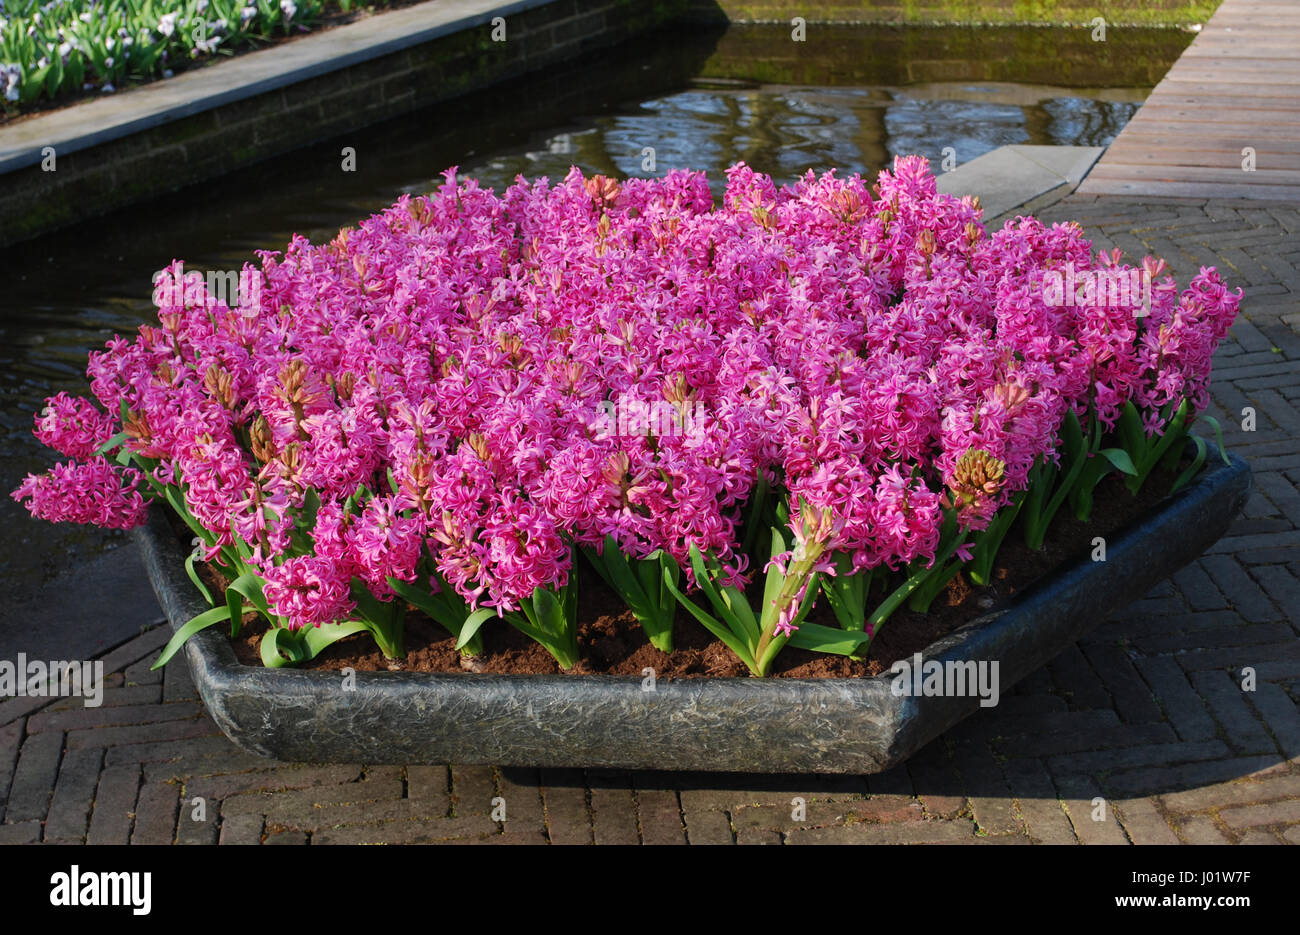 Pink Hyacinth Hyacinthus Plants Growth In Stone Flowerpot Stock